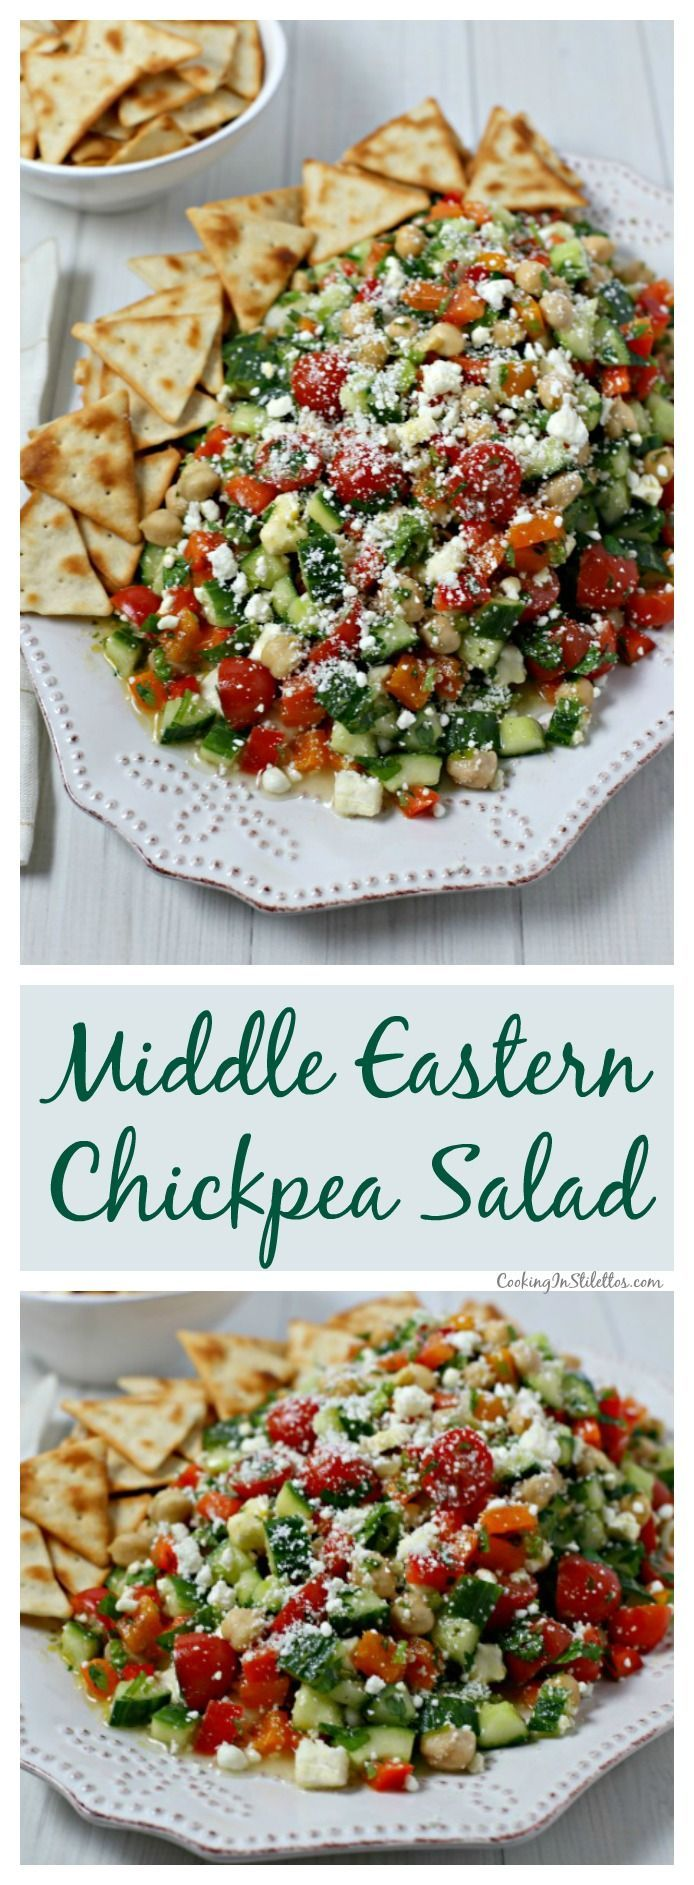 Looking for a fabulous salad - make this chic and delicious Middle Eastern Chickpea Salad from